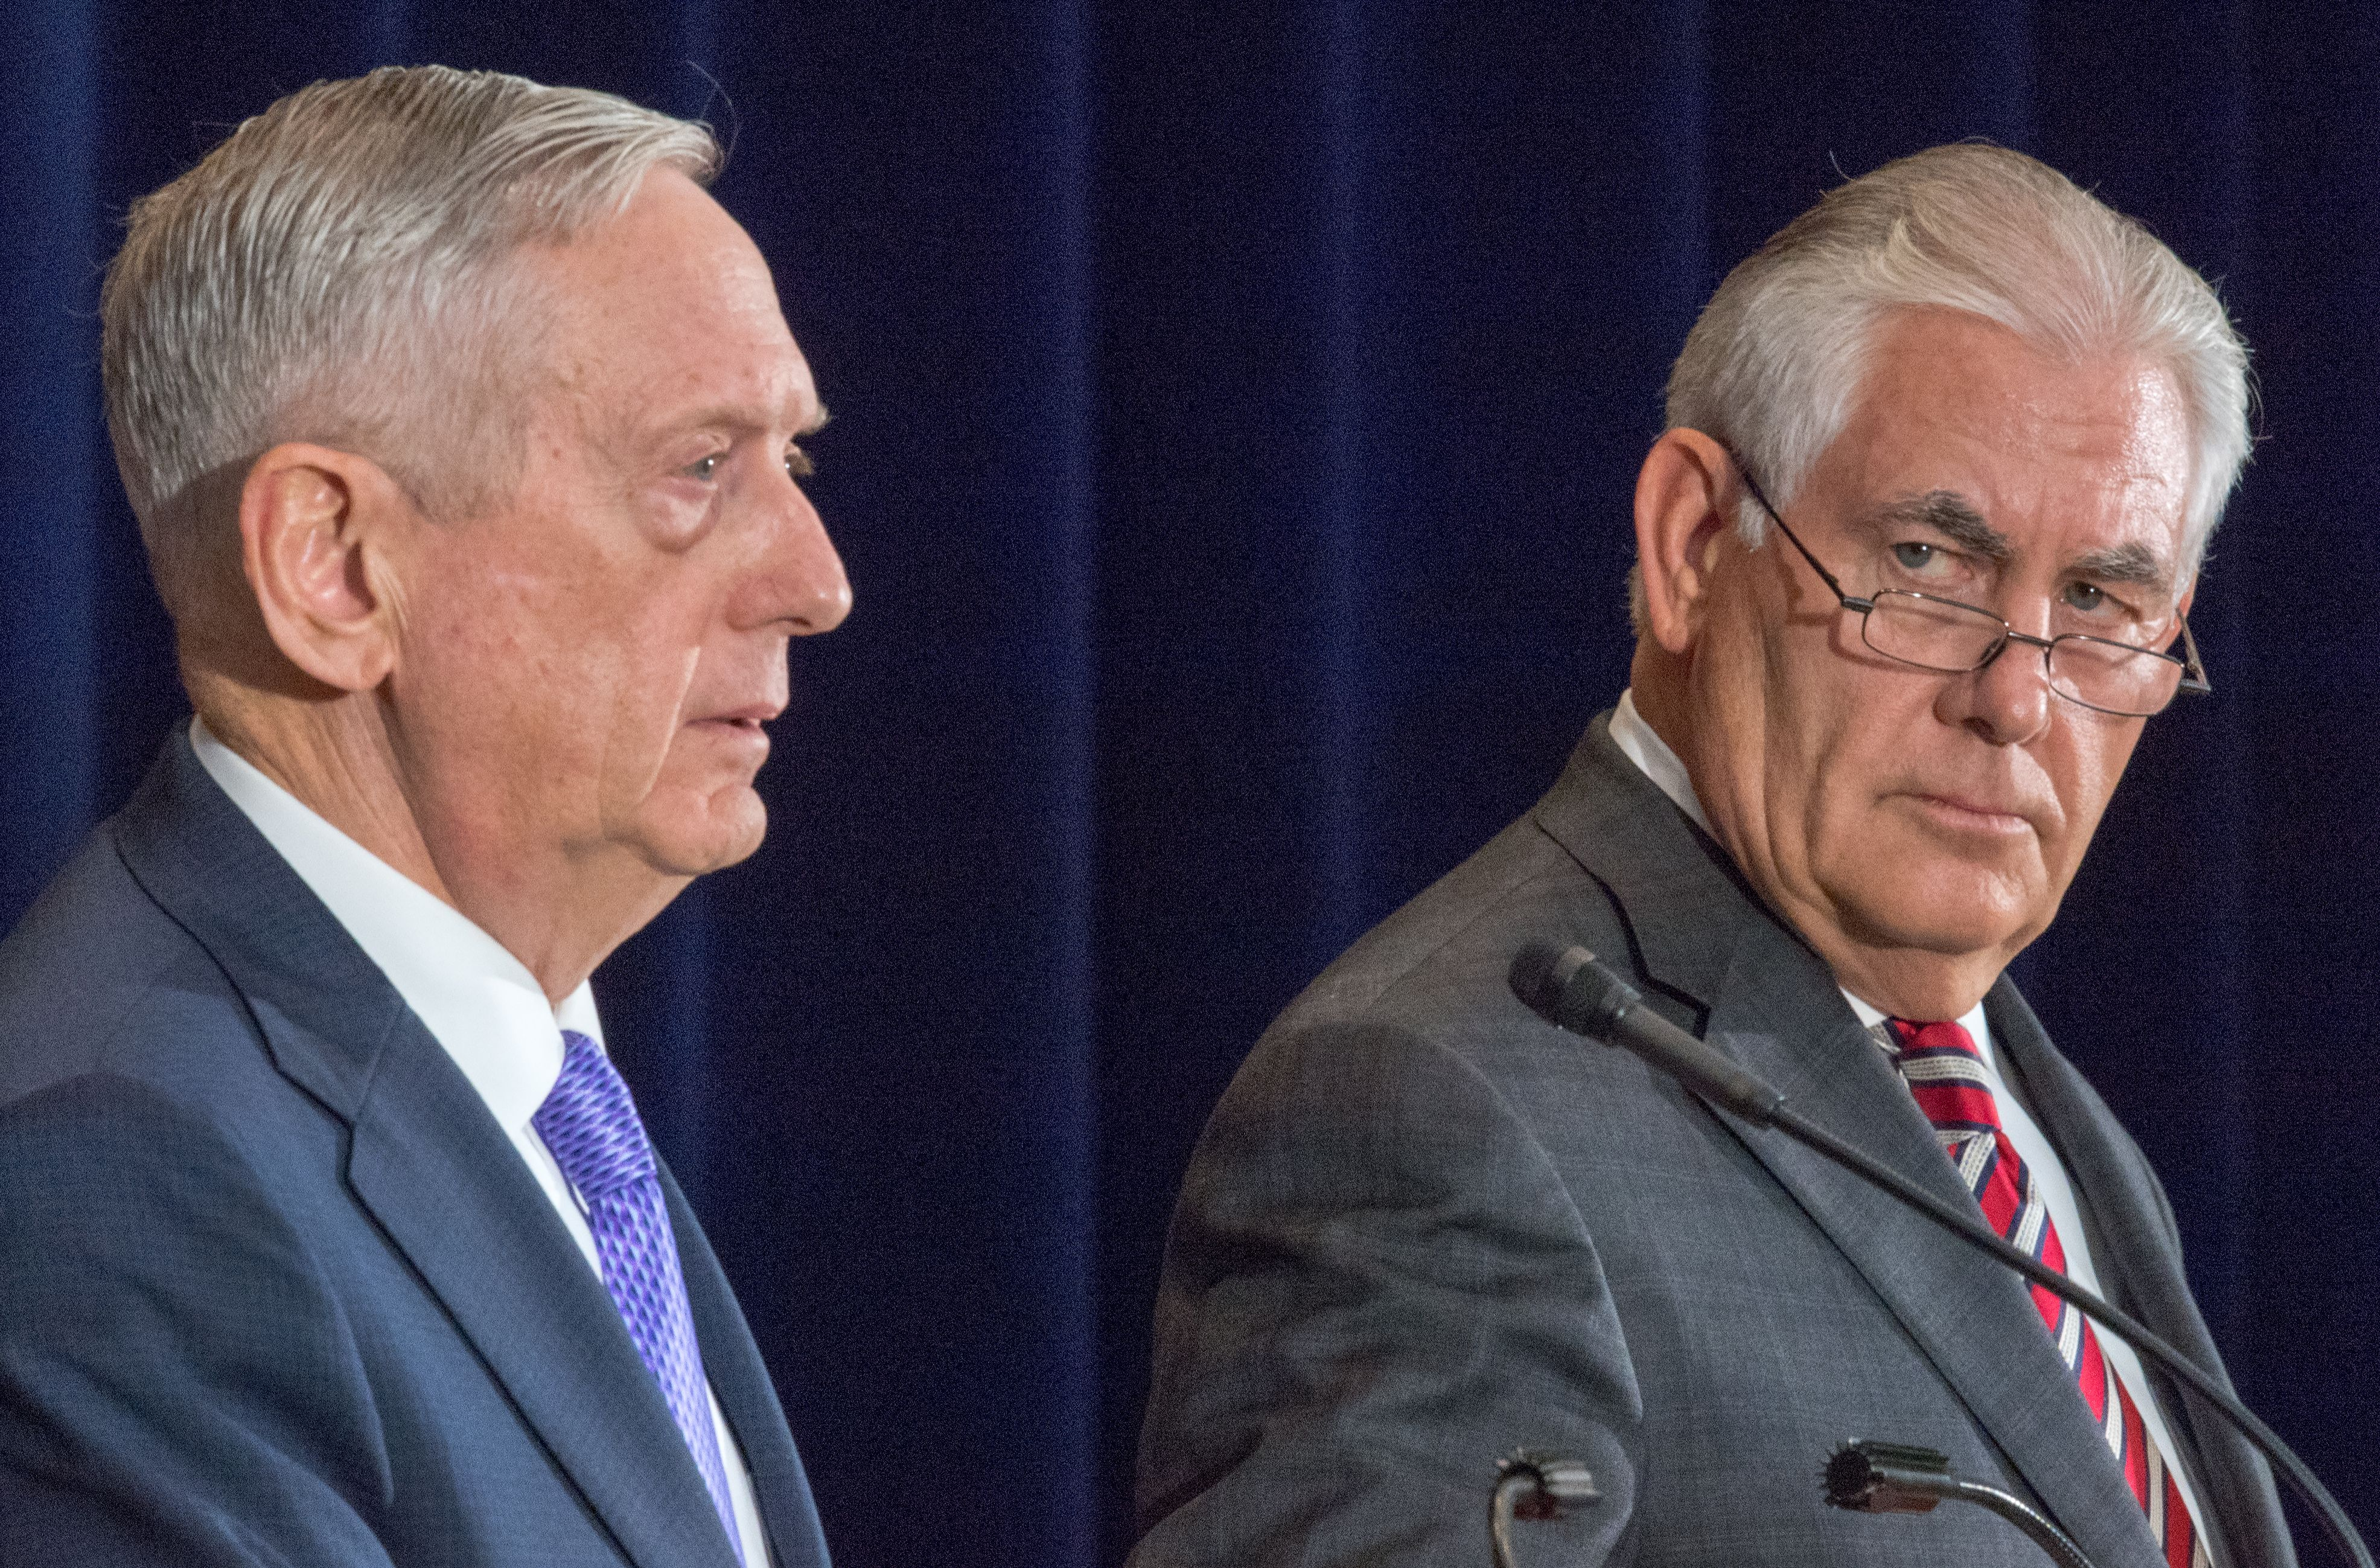 Secretary of Defense Jim Mattis and Secretary of State Rex Tillerson in Washington, DC, on June 21, 2017.